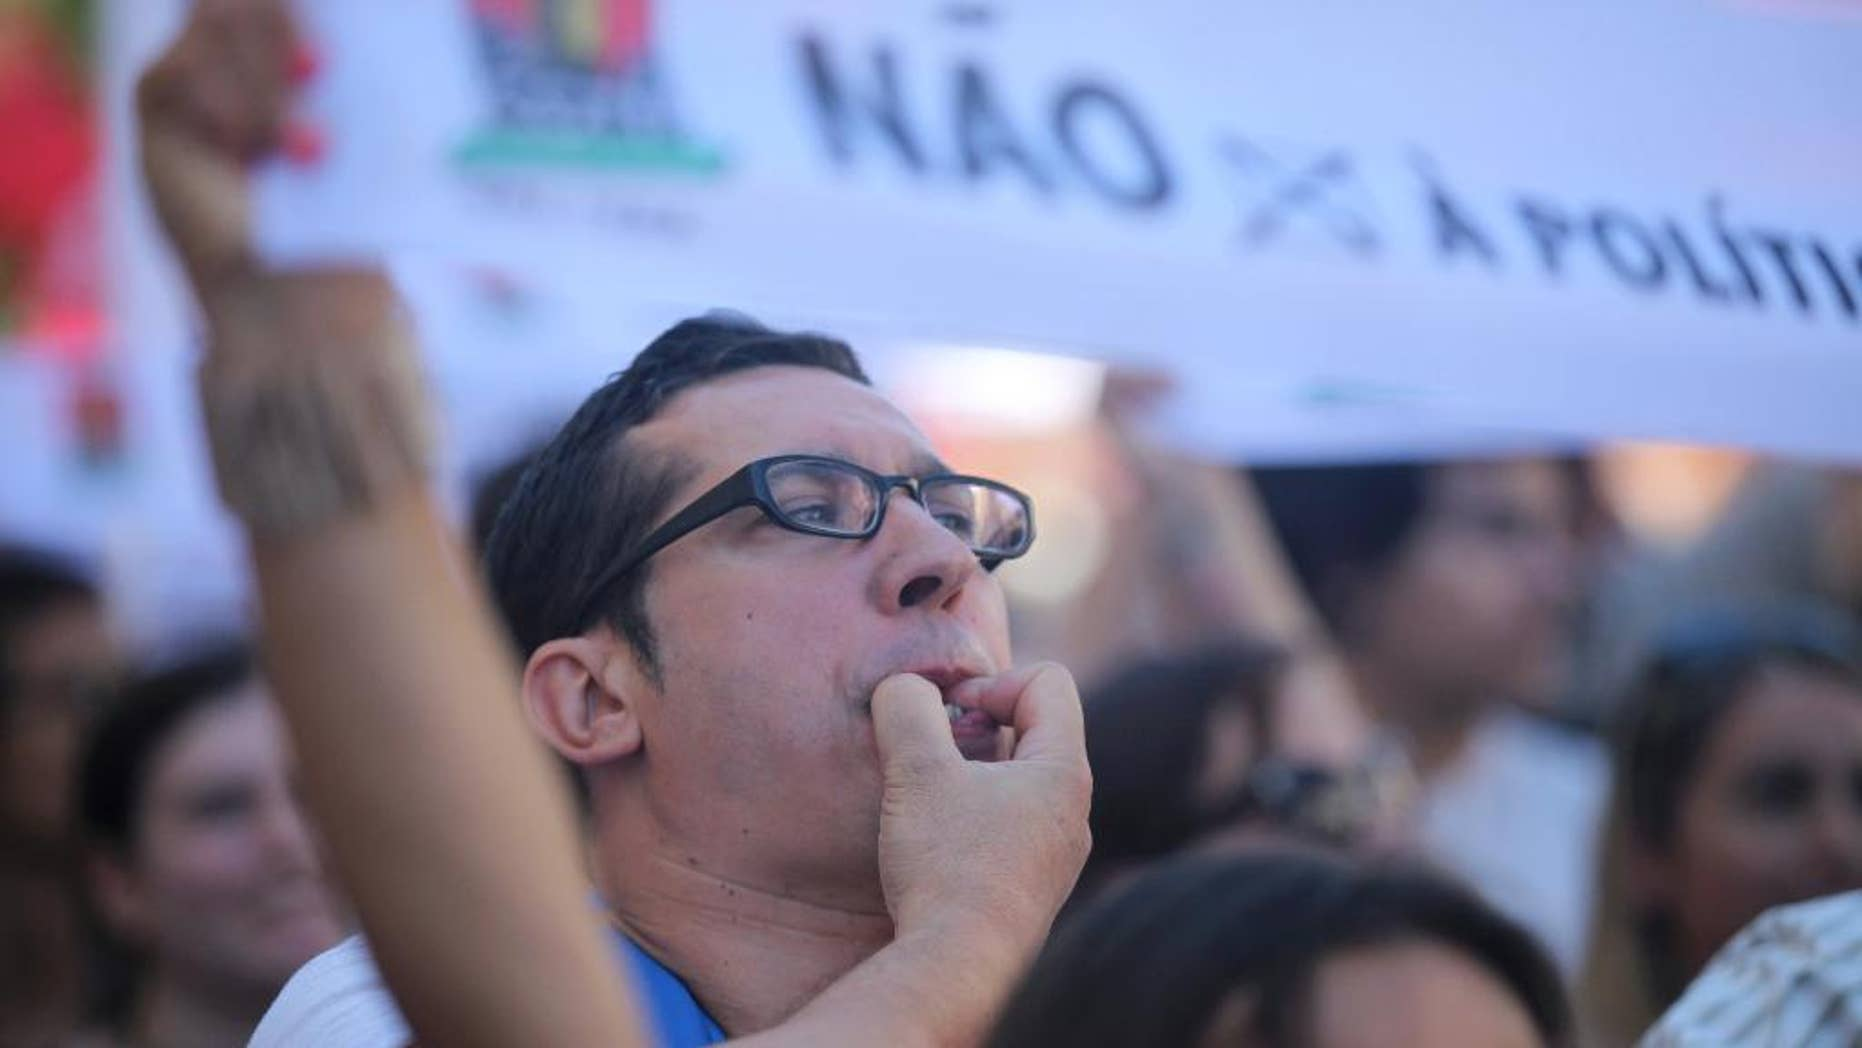 "A man whistles during a workers' unions demonstration against the government's austerity measures outside the parliament in Lisbon, Wednesday, July 22 2015. On Tuesday the Portuguese president began hearing political leaders to decide on a date for the country's next general elections to be held after the summer. The banner reads ""No to right wing policy"". (AP Photo/Armando Franca)"